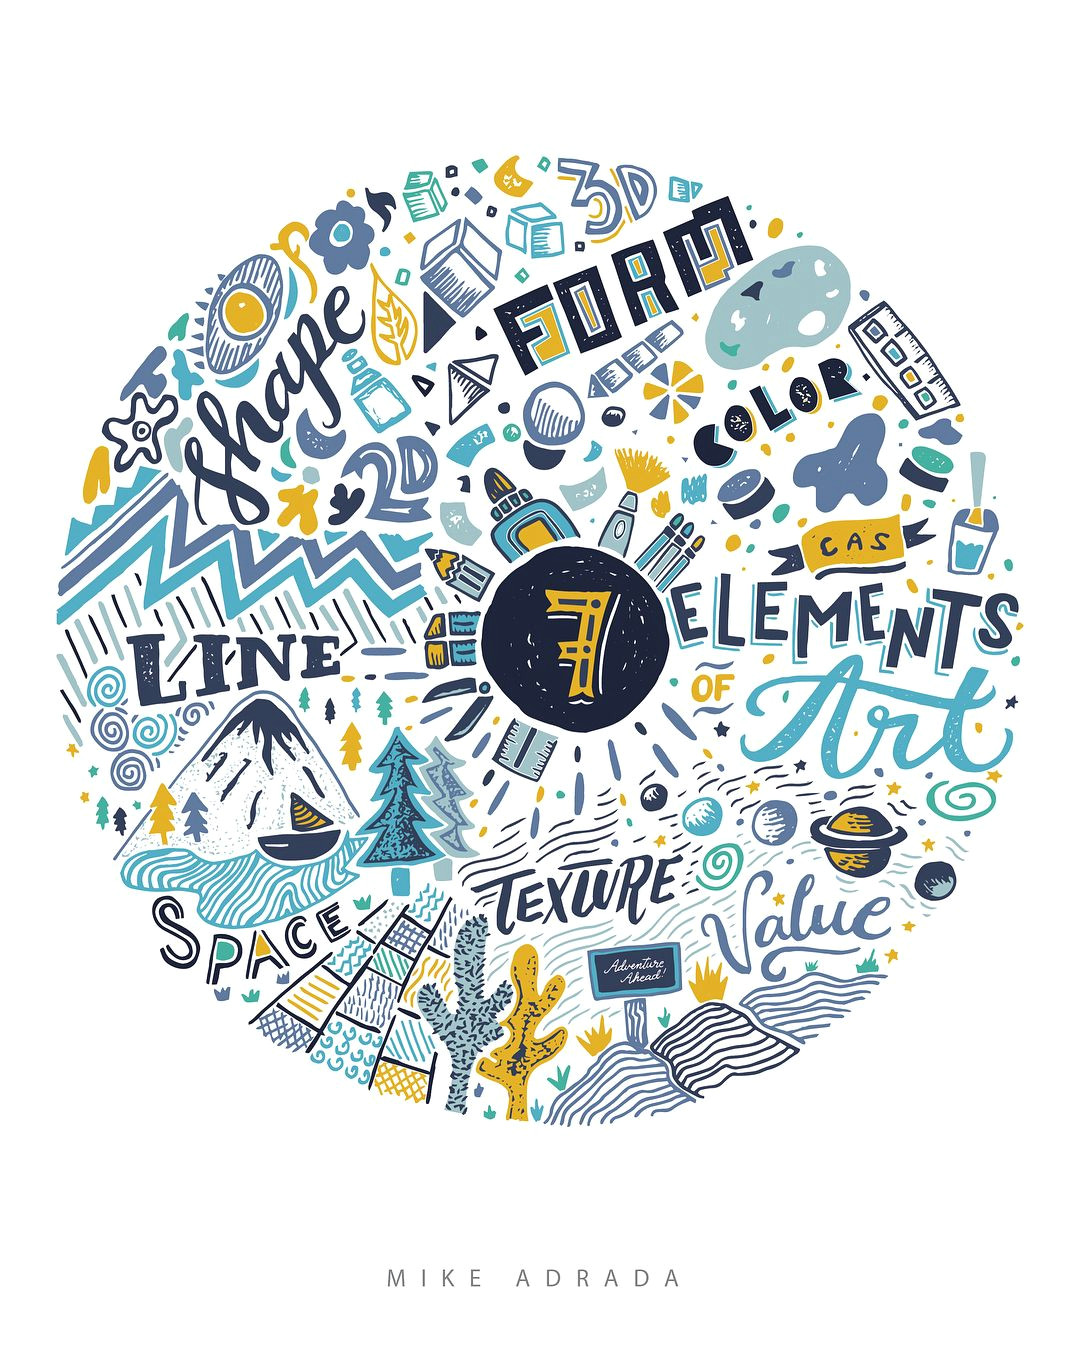 the 7 elements of art hand drawn hand lettered and digitzed in illustrator